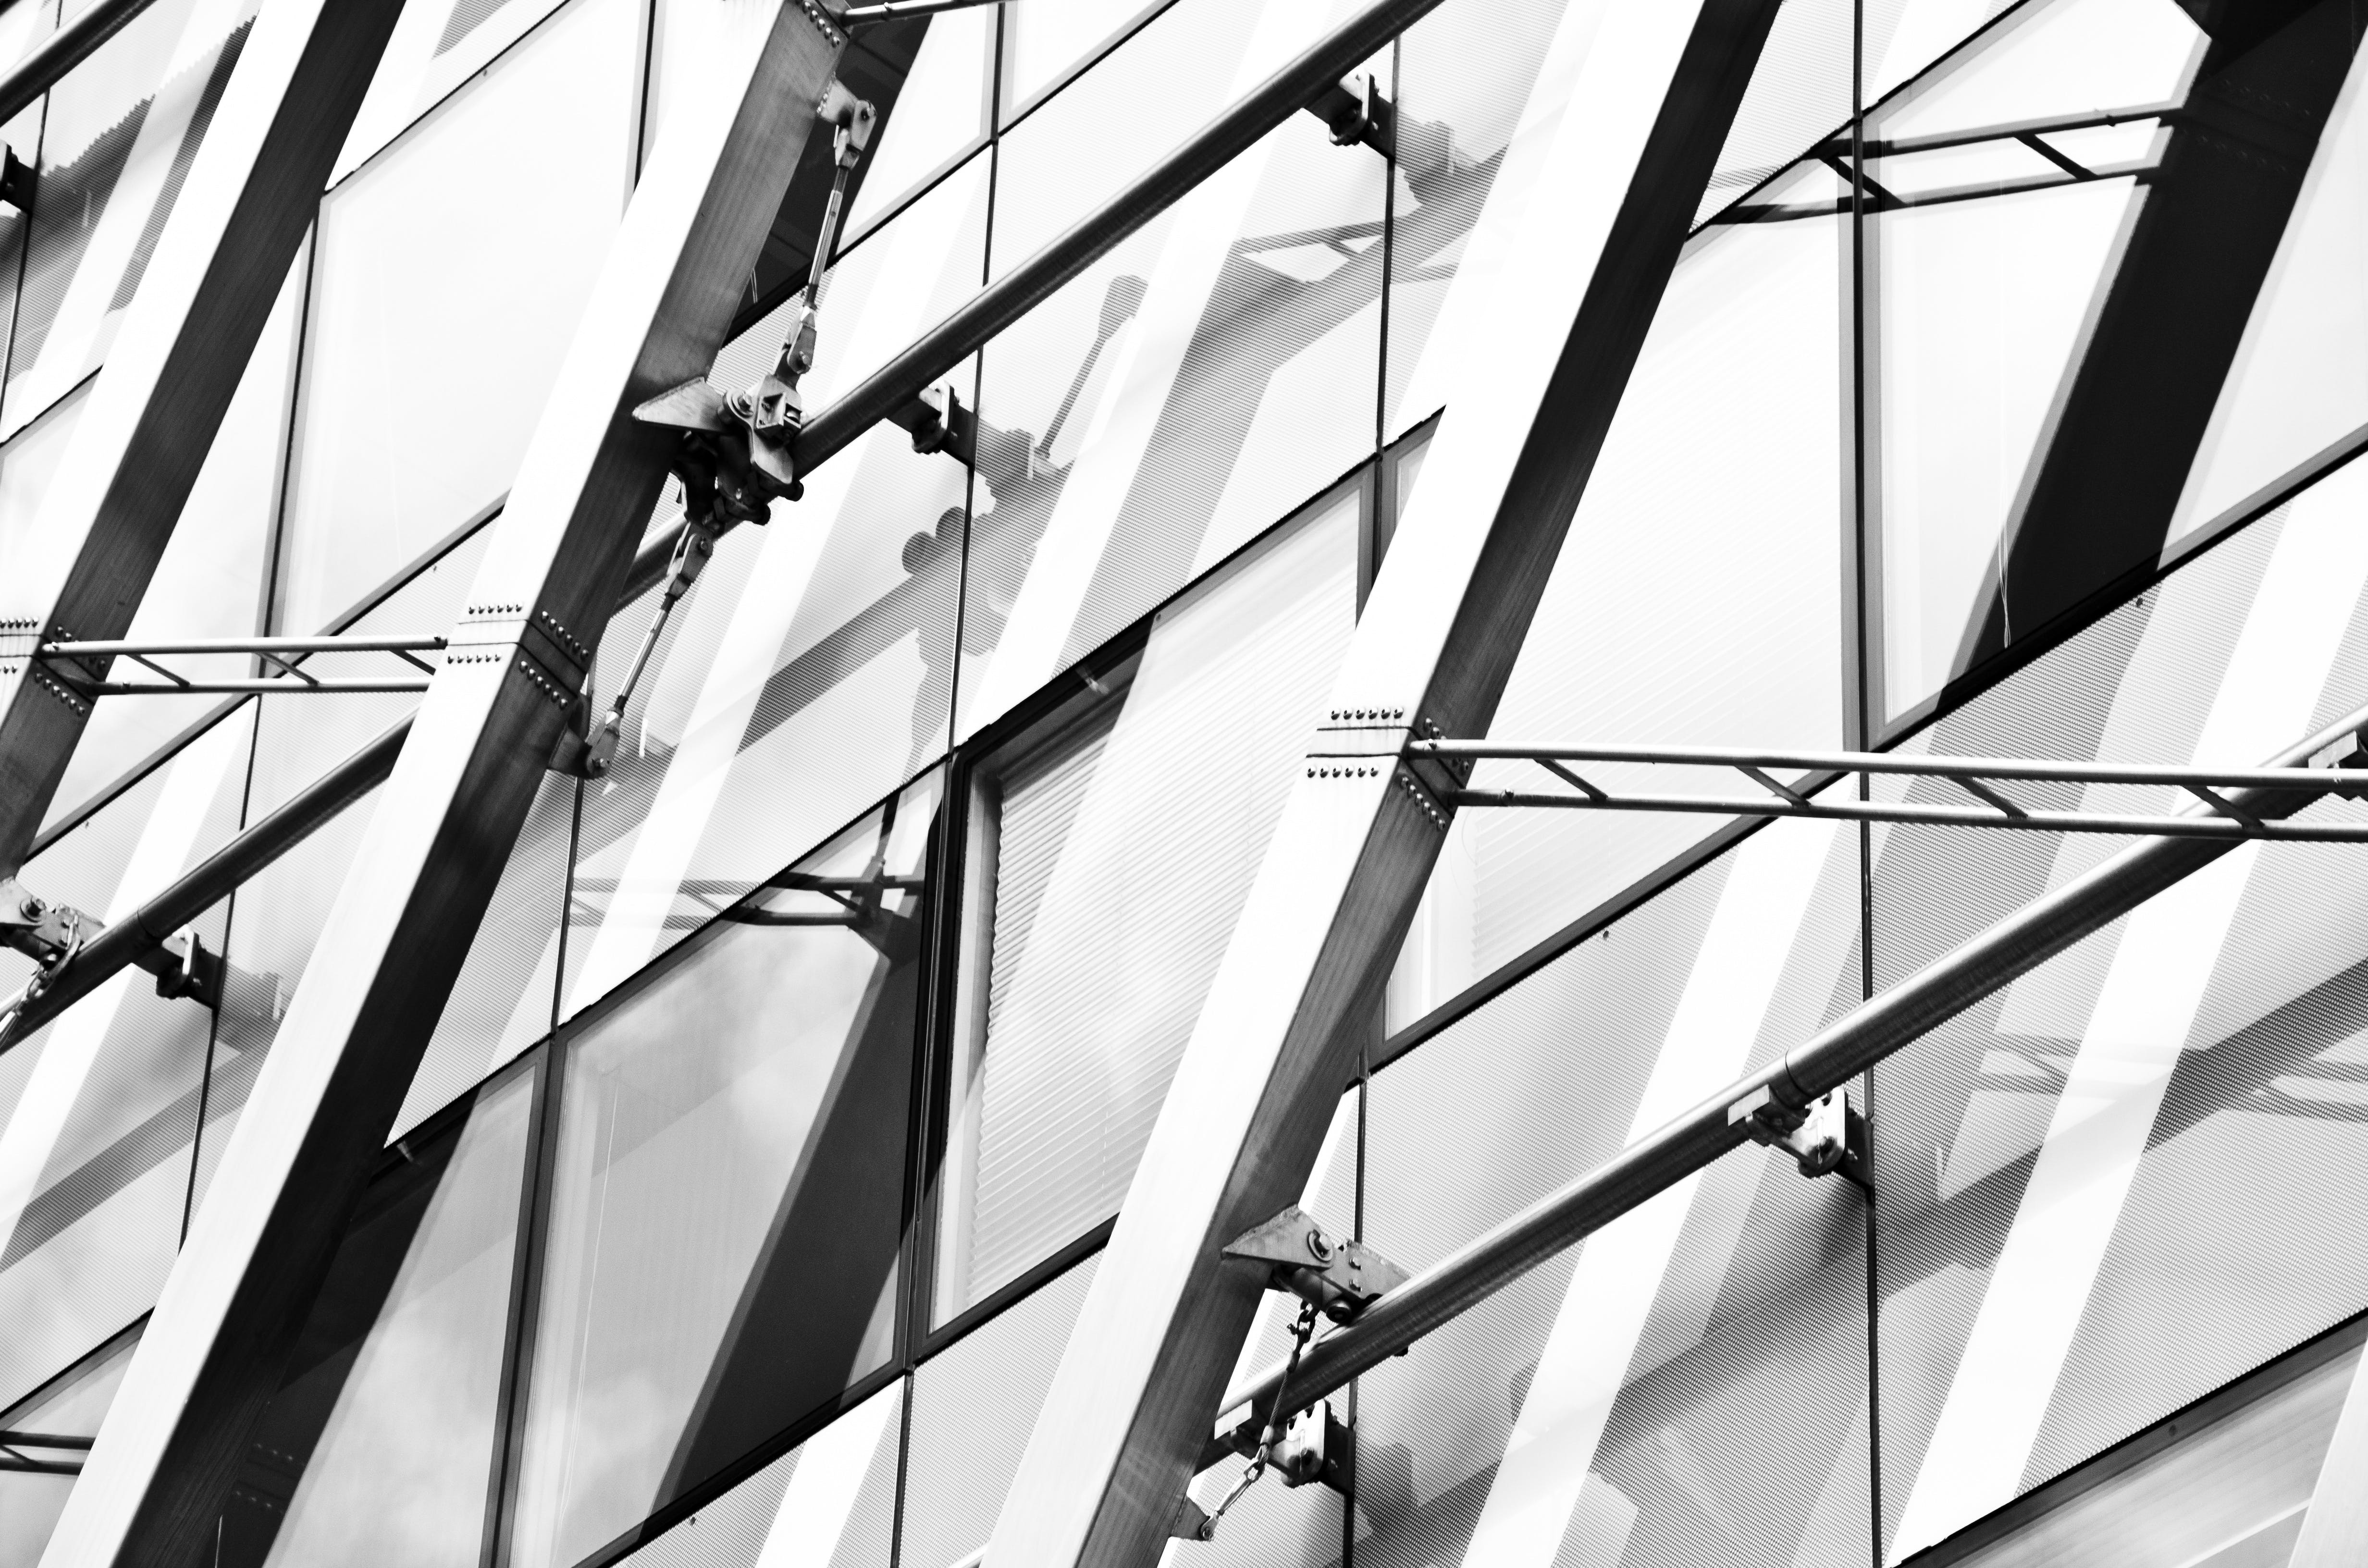 Free stock photo of black-and-white, building, metal, glass